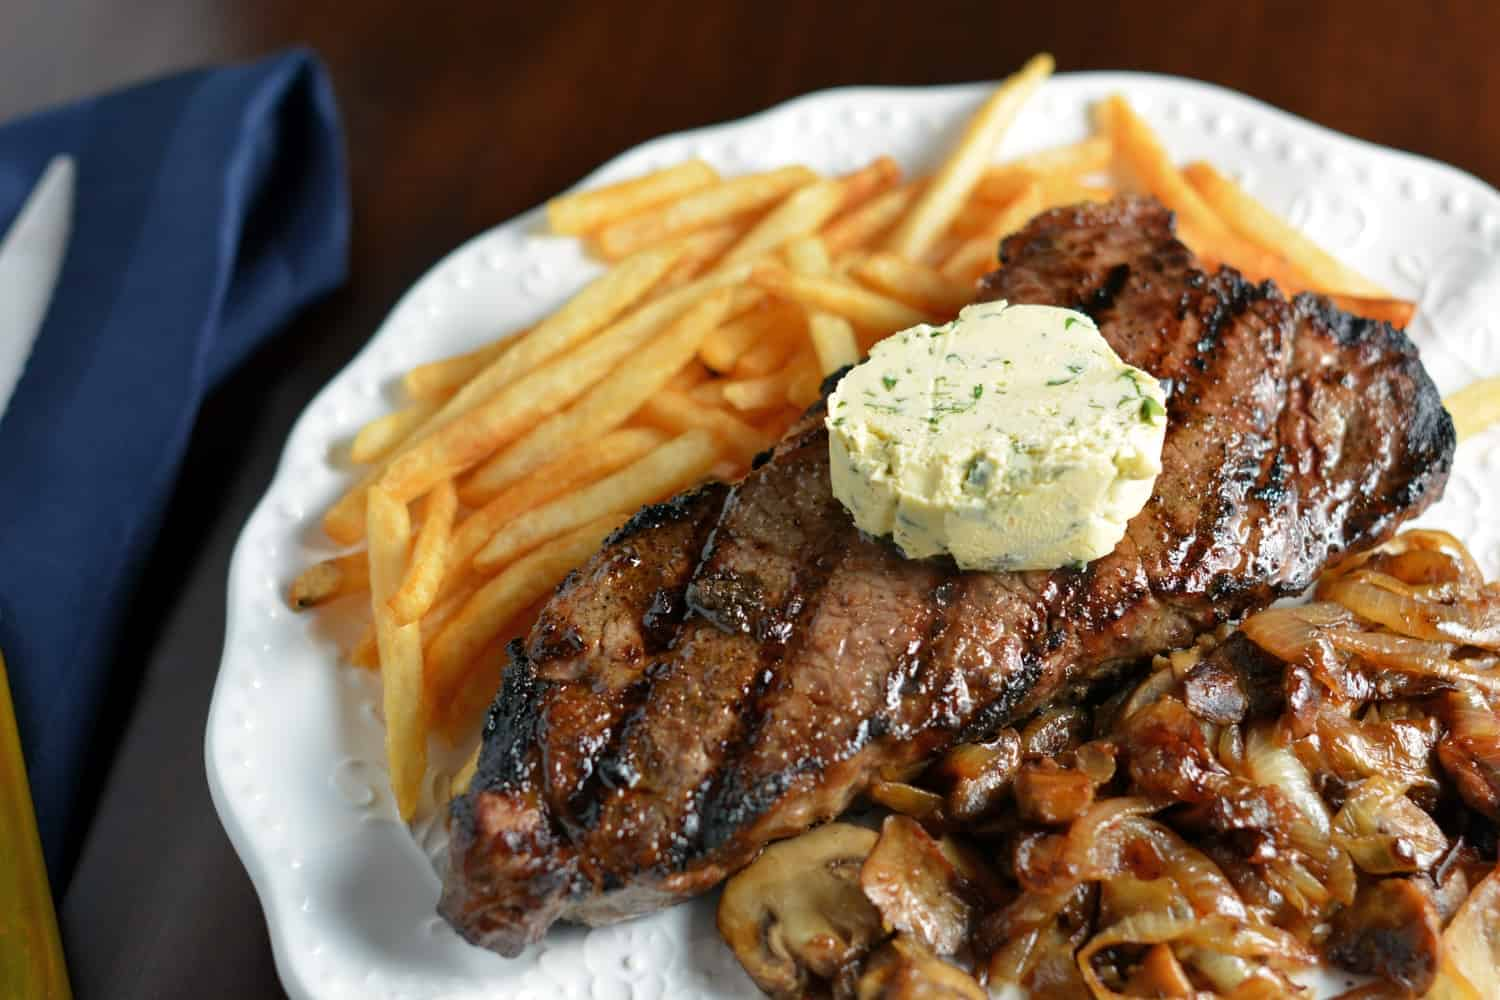 A juicy seasoned steak over crispy French fried potatoes, topped with tangy maitre d'hotel butter and served with sauteed garlic mushrooms and onions.